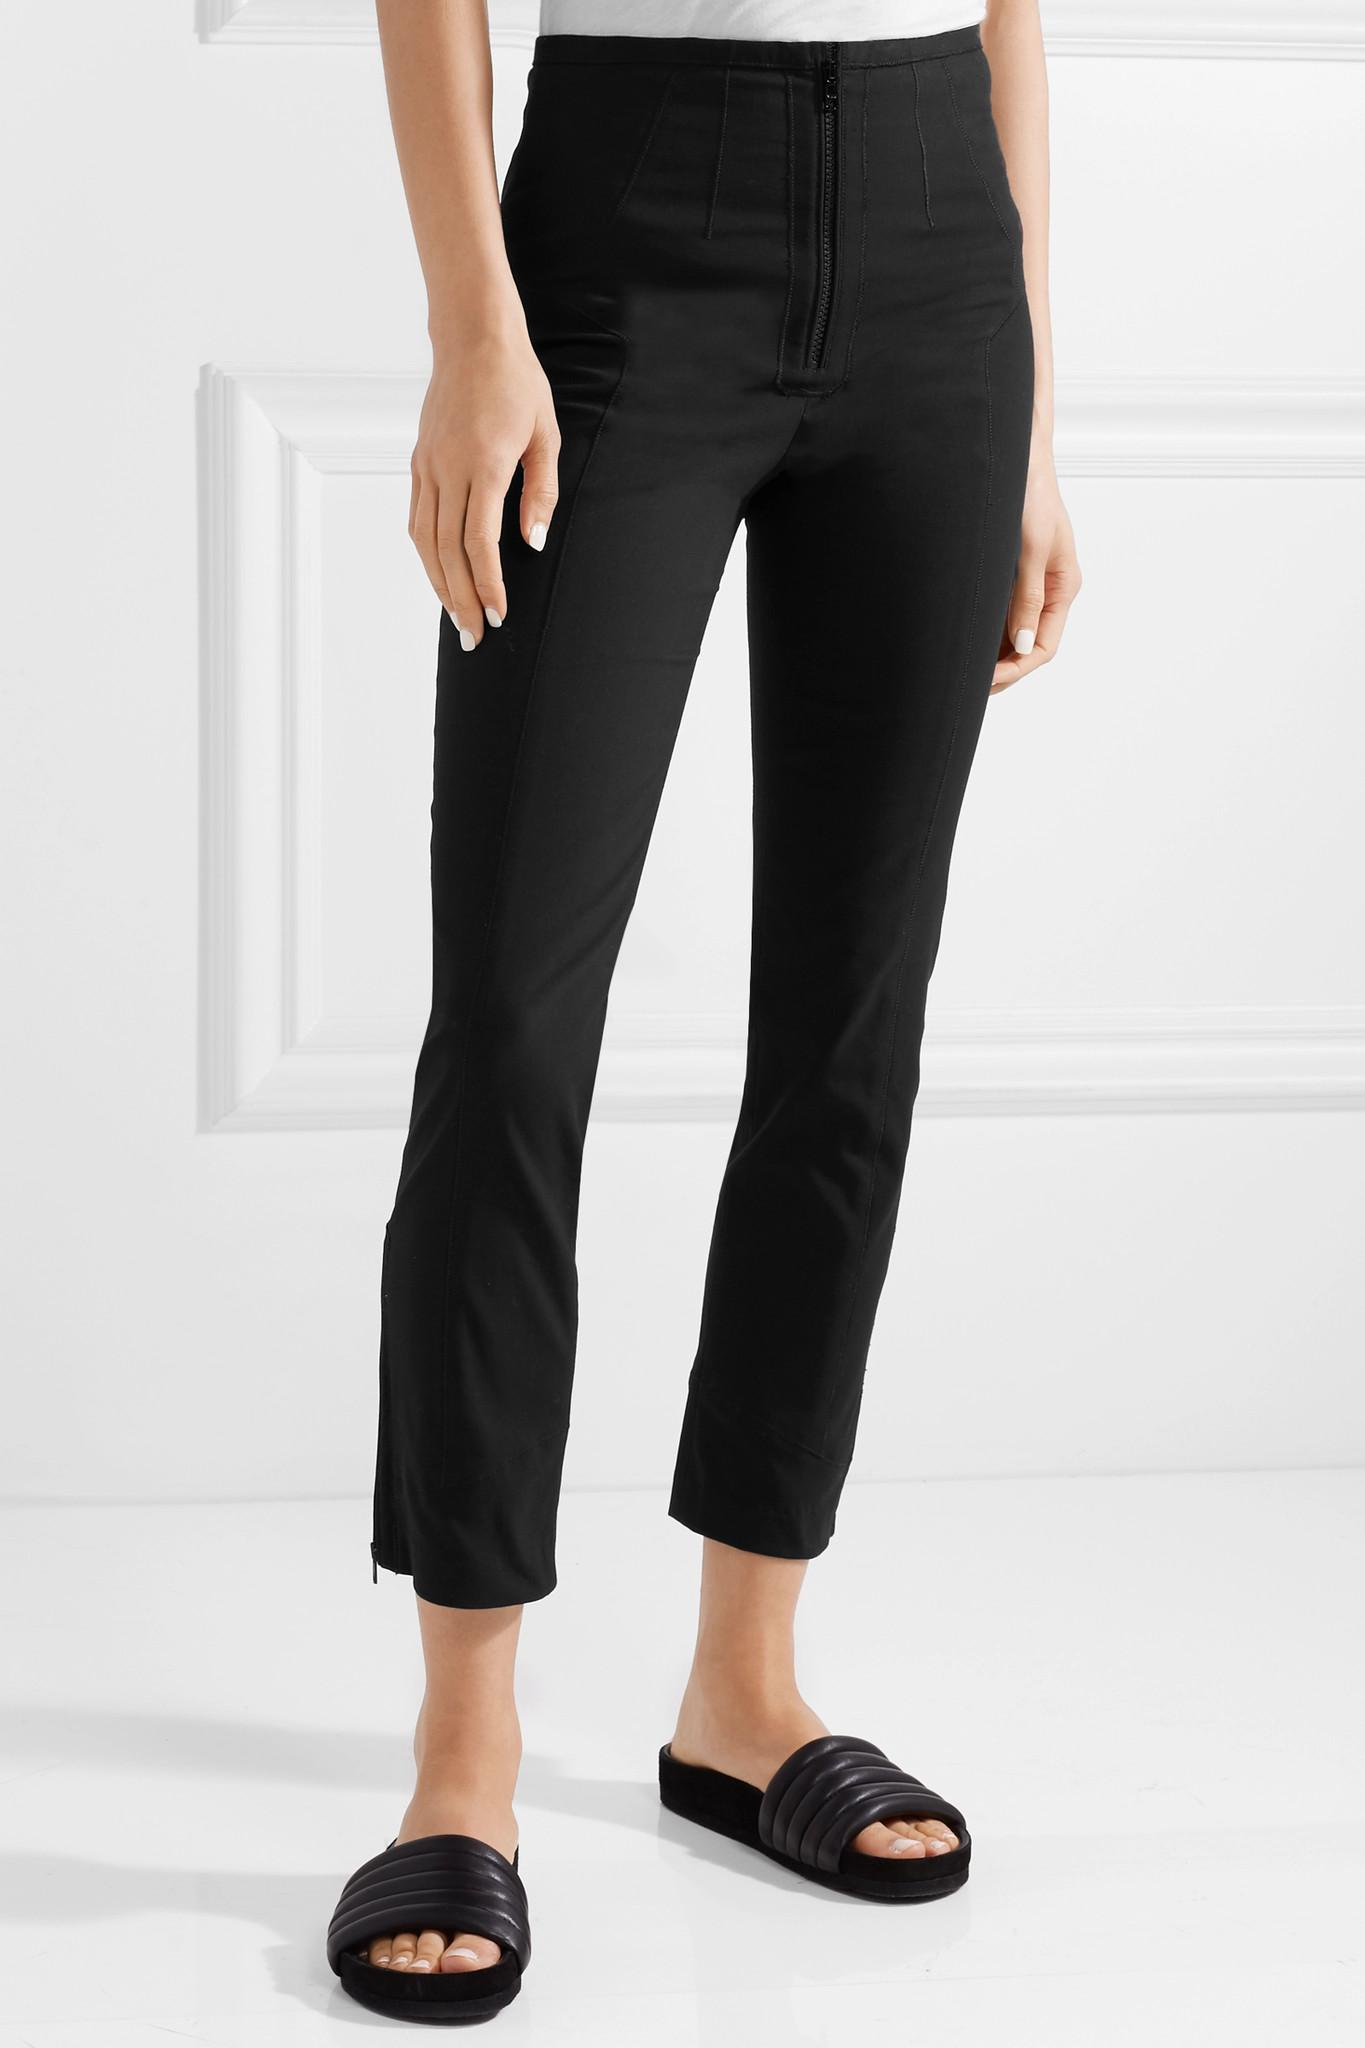 Jumpery Stretch Cotton-blend Skinny Pants - Black Isabel Marant Lowest Price Sale Online For Sale Cheap Price From China MCJJRme